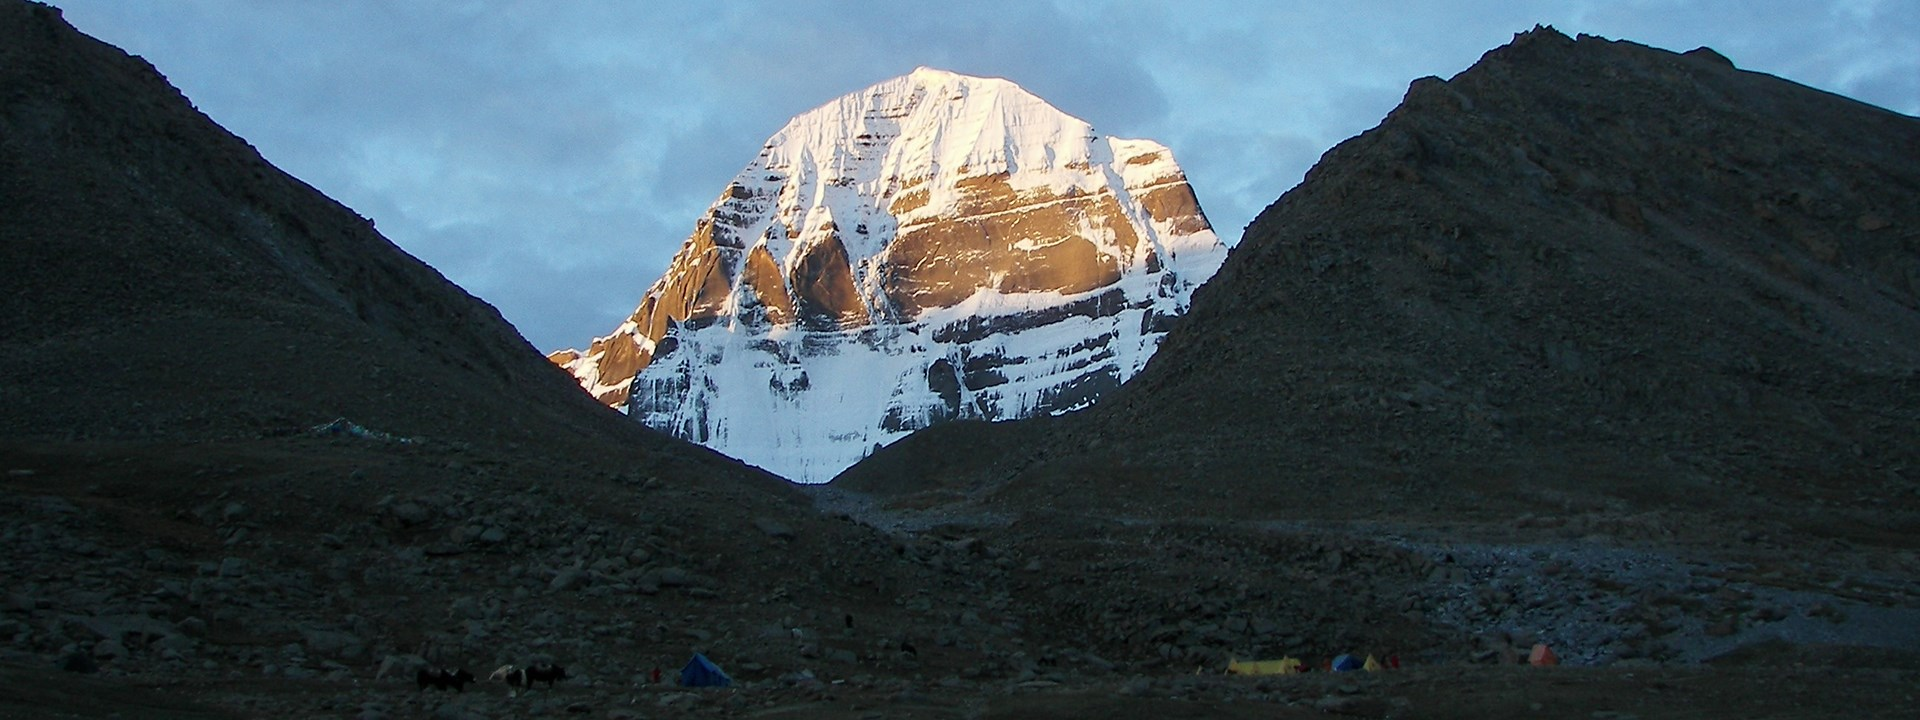 Overland Tour from Tibet to Xinjiang with Trekking around Kailash